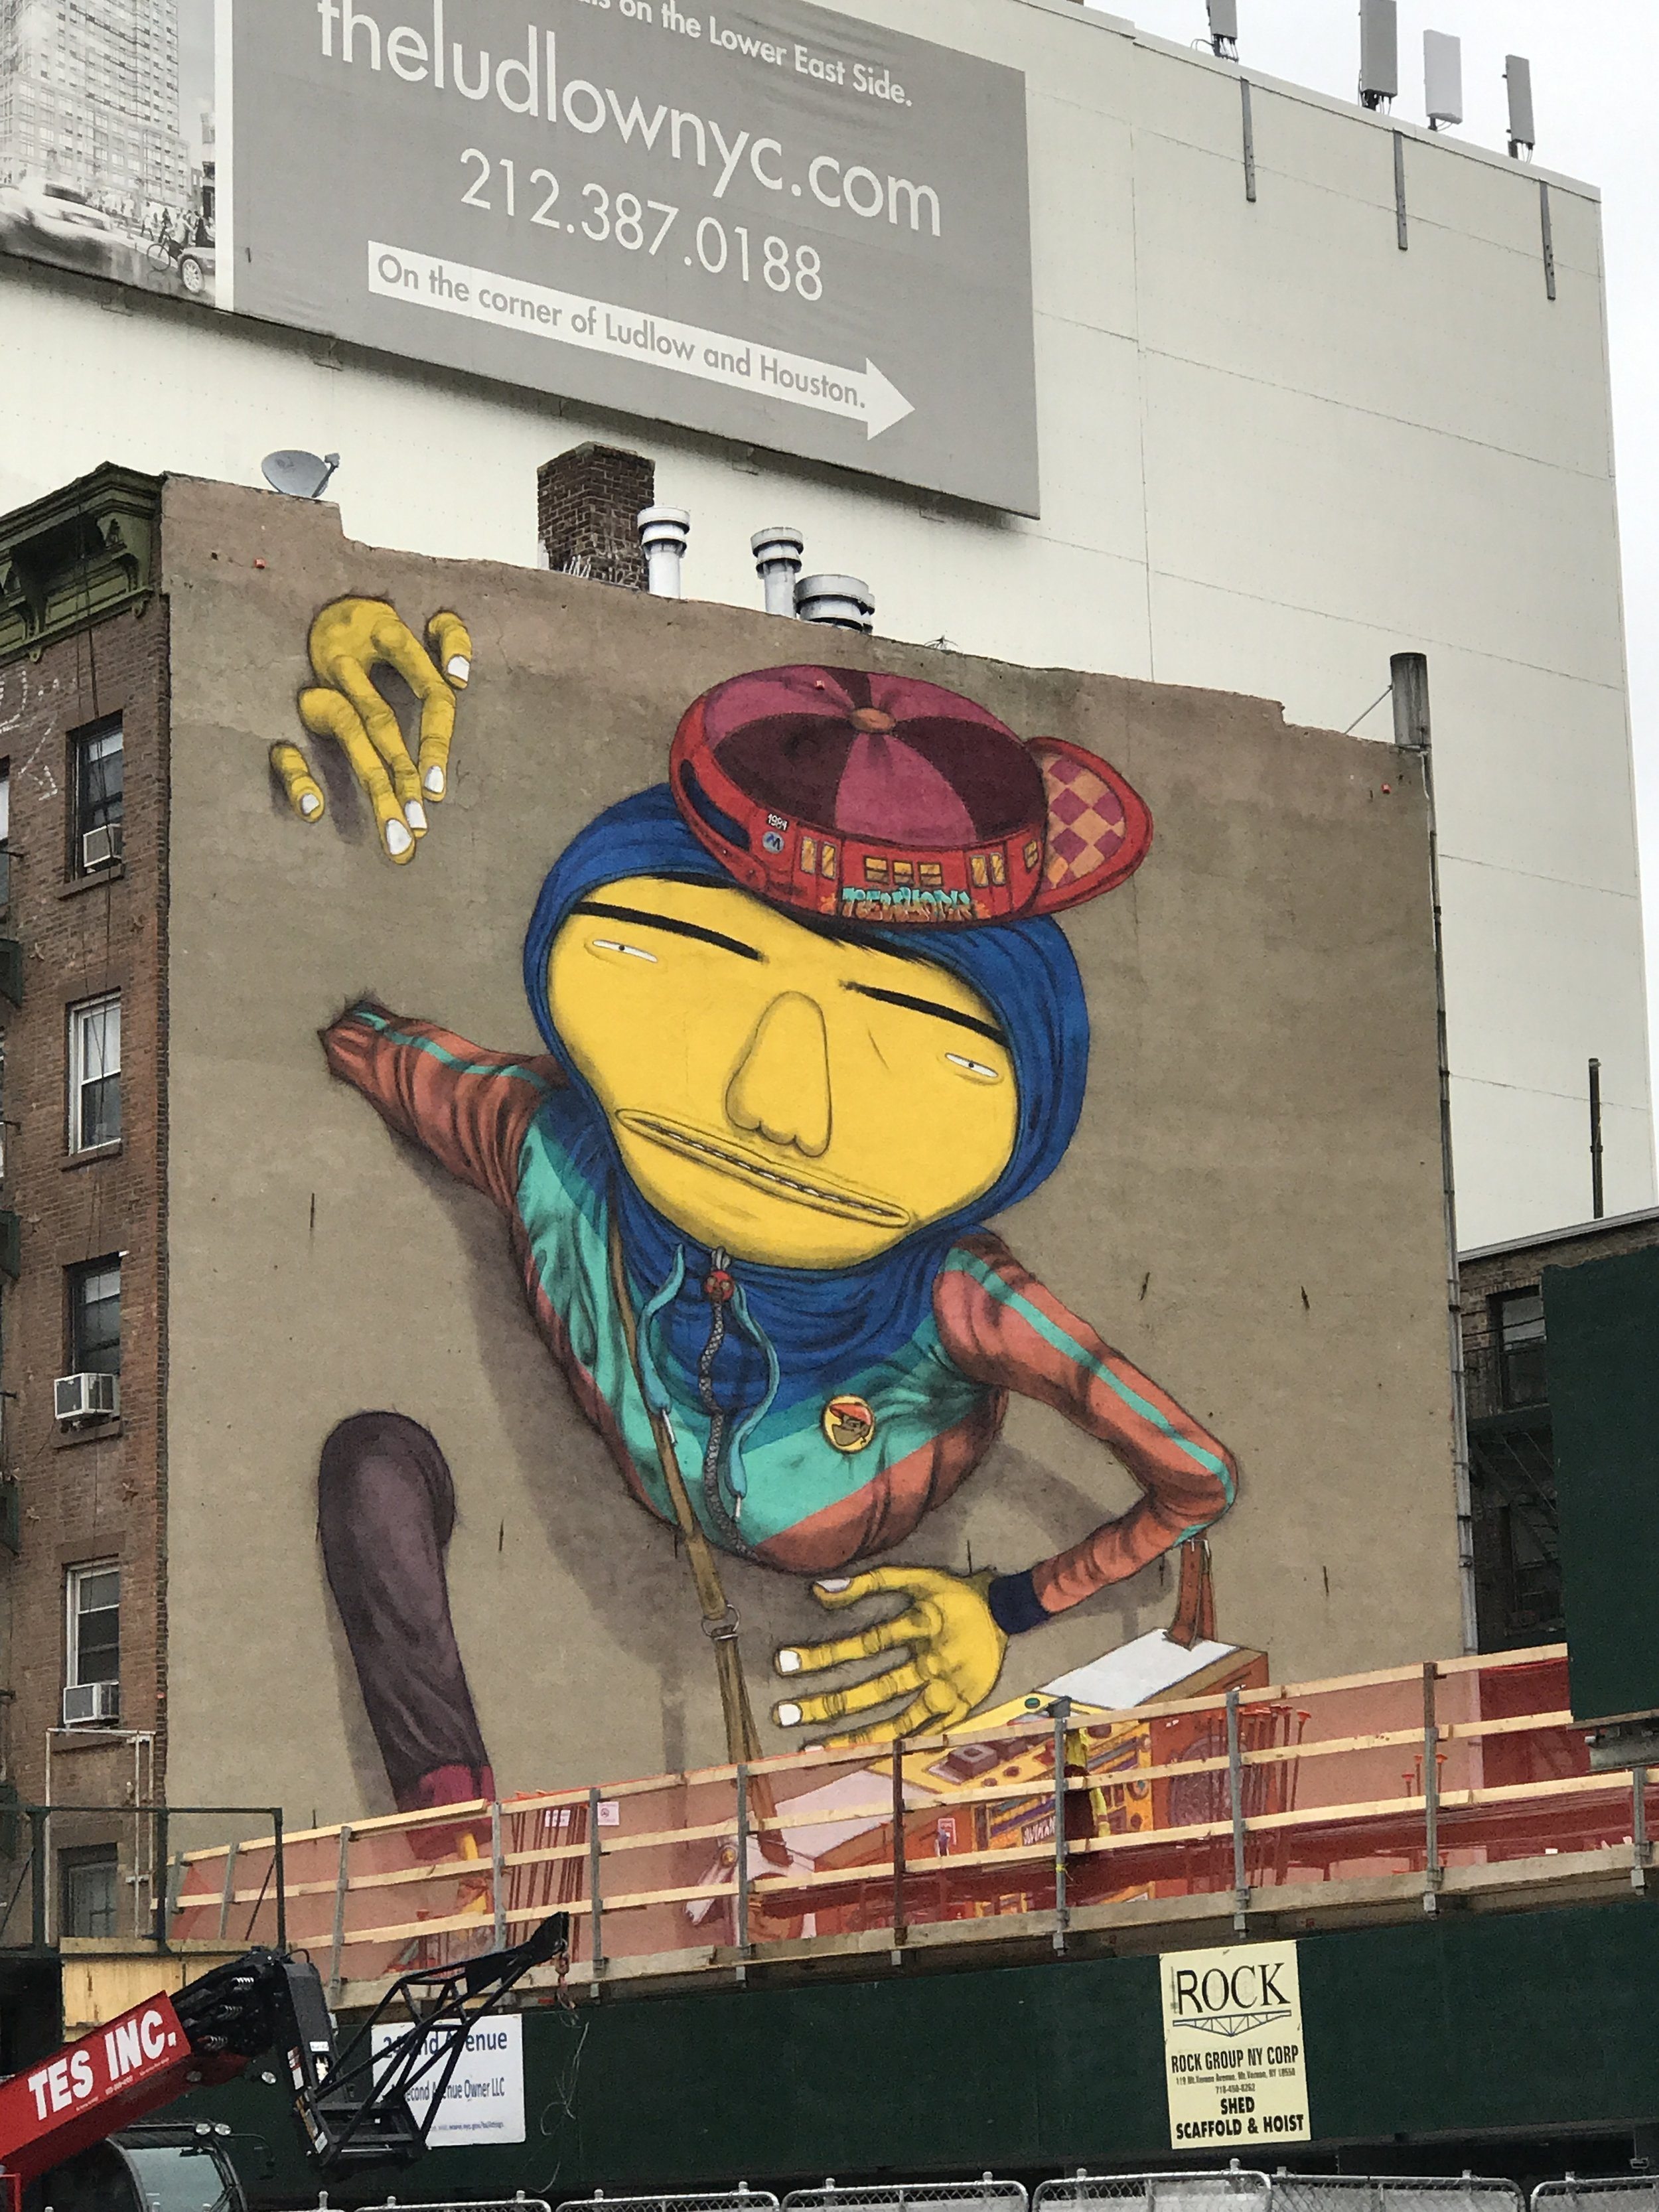 Os Gemeos     |  2nd Avenue and 1st Street, East Village